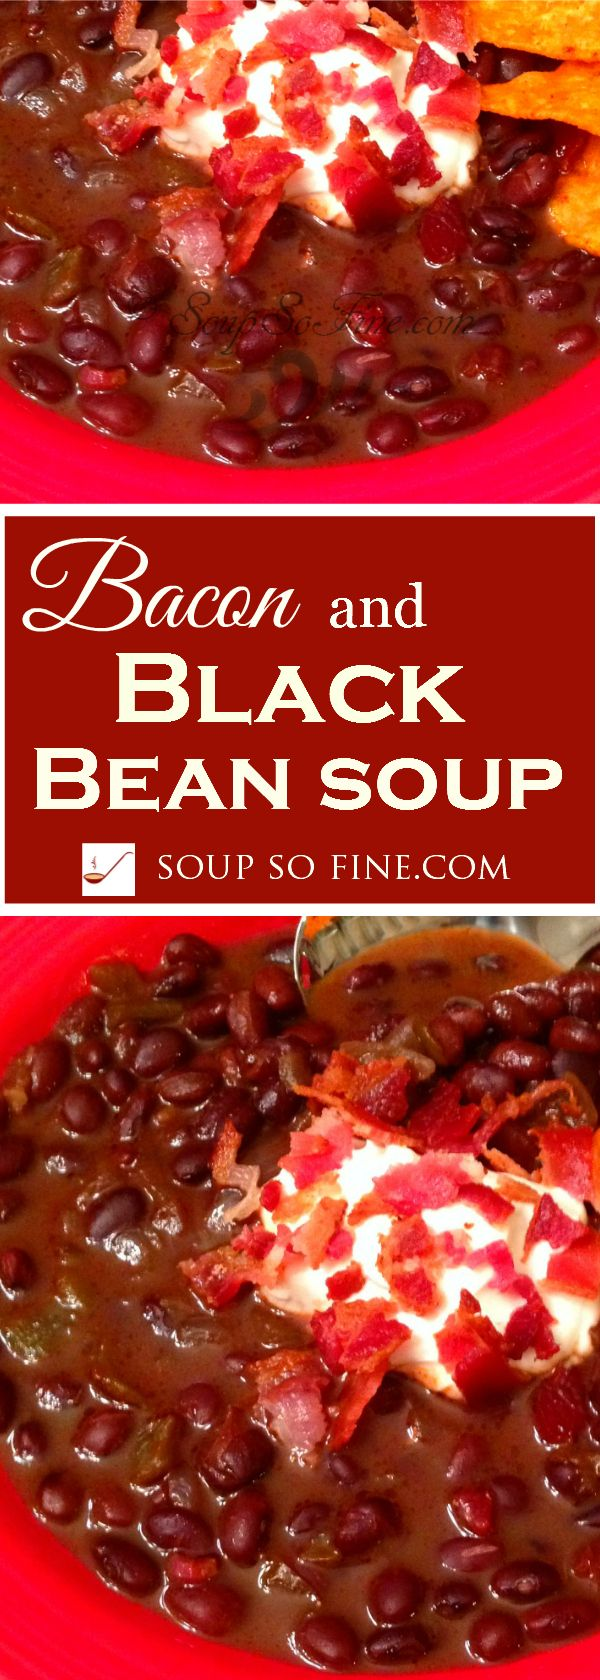 Gluten Free | Full of flavor, fiber, and fabulous nutrition. Plus, the smoky goodness of bacon combines beautifully with the hearty flavor of black beans, sautéed onions, and diced green chiles. Yummy!